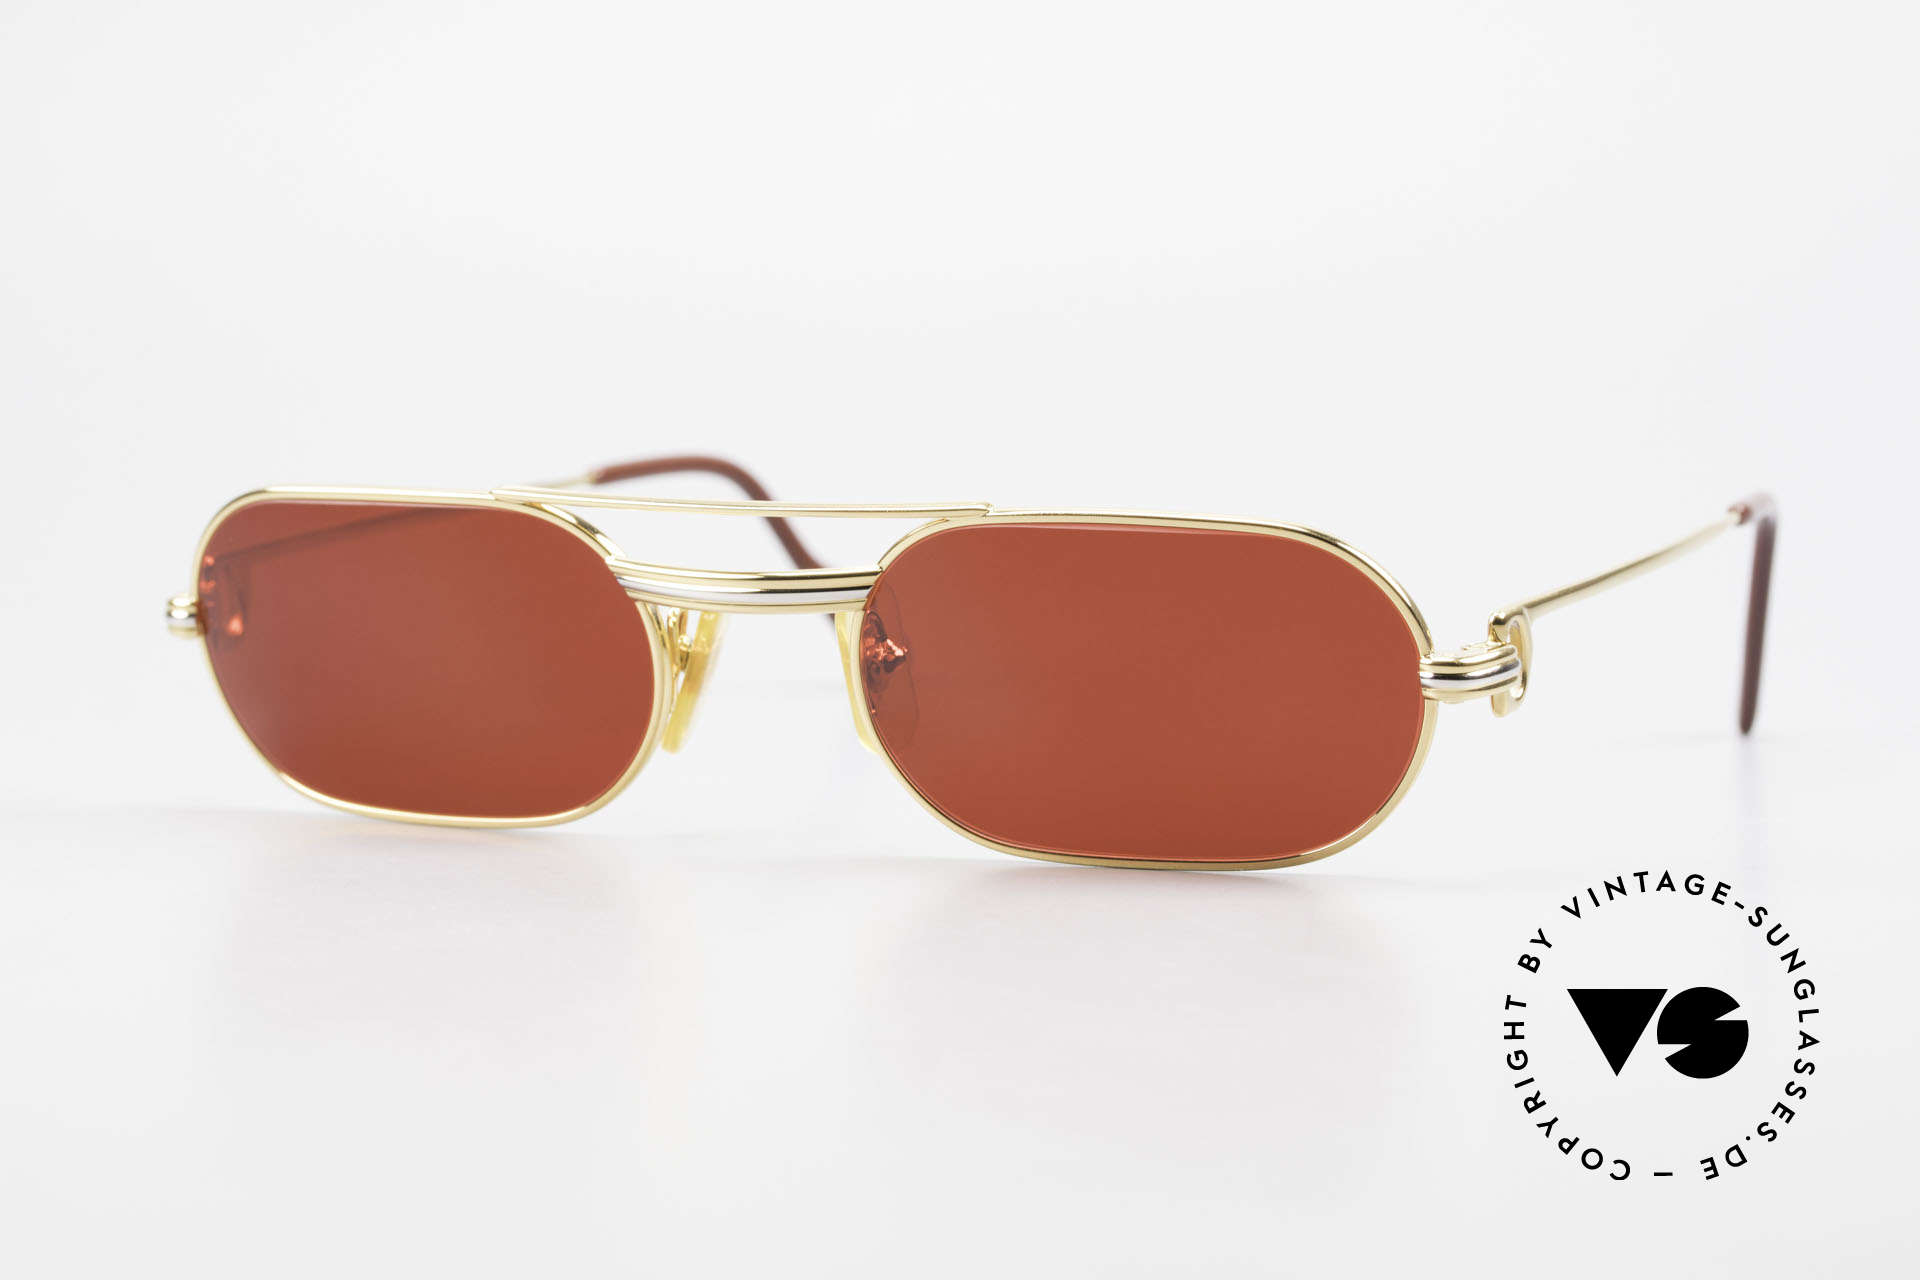 Cartier MUST LC - S 3D Red Luxury Sunglasses, MUST: the first model of the Lunettes Collection '83, Made for Men and Women